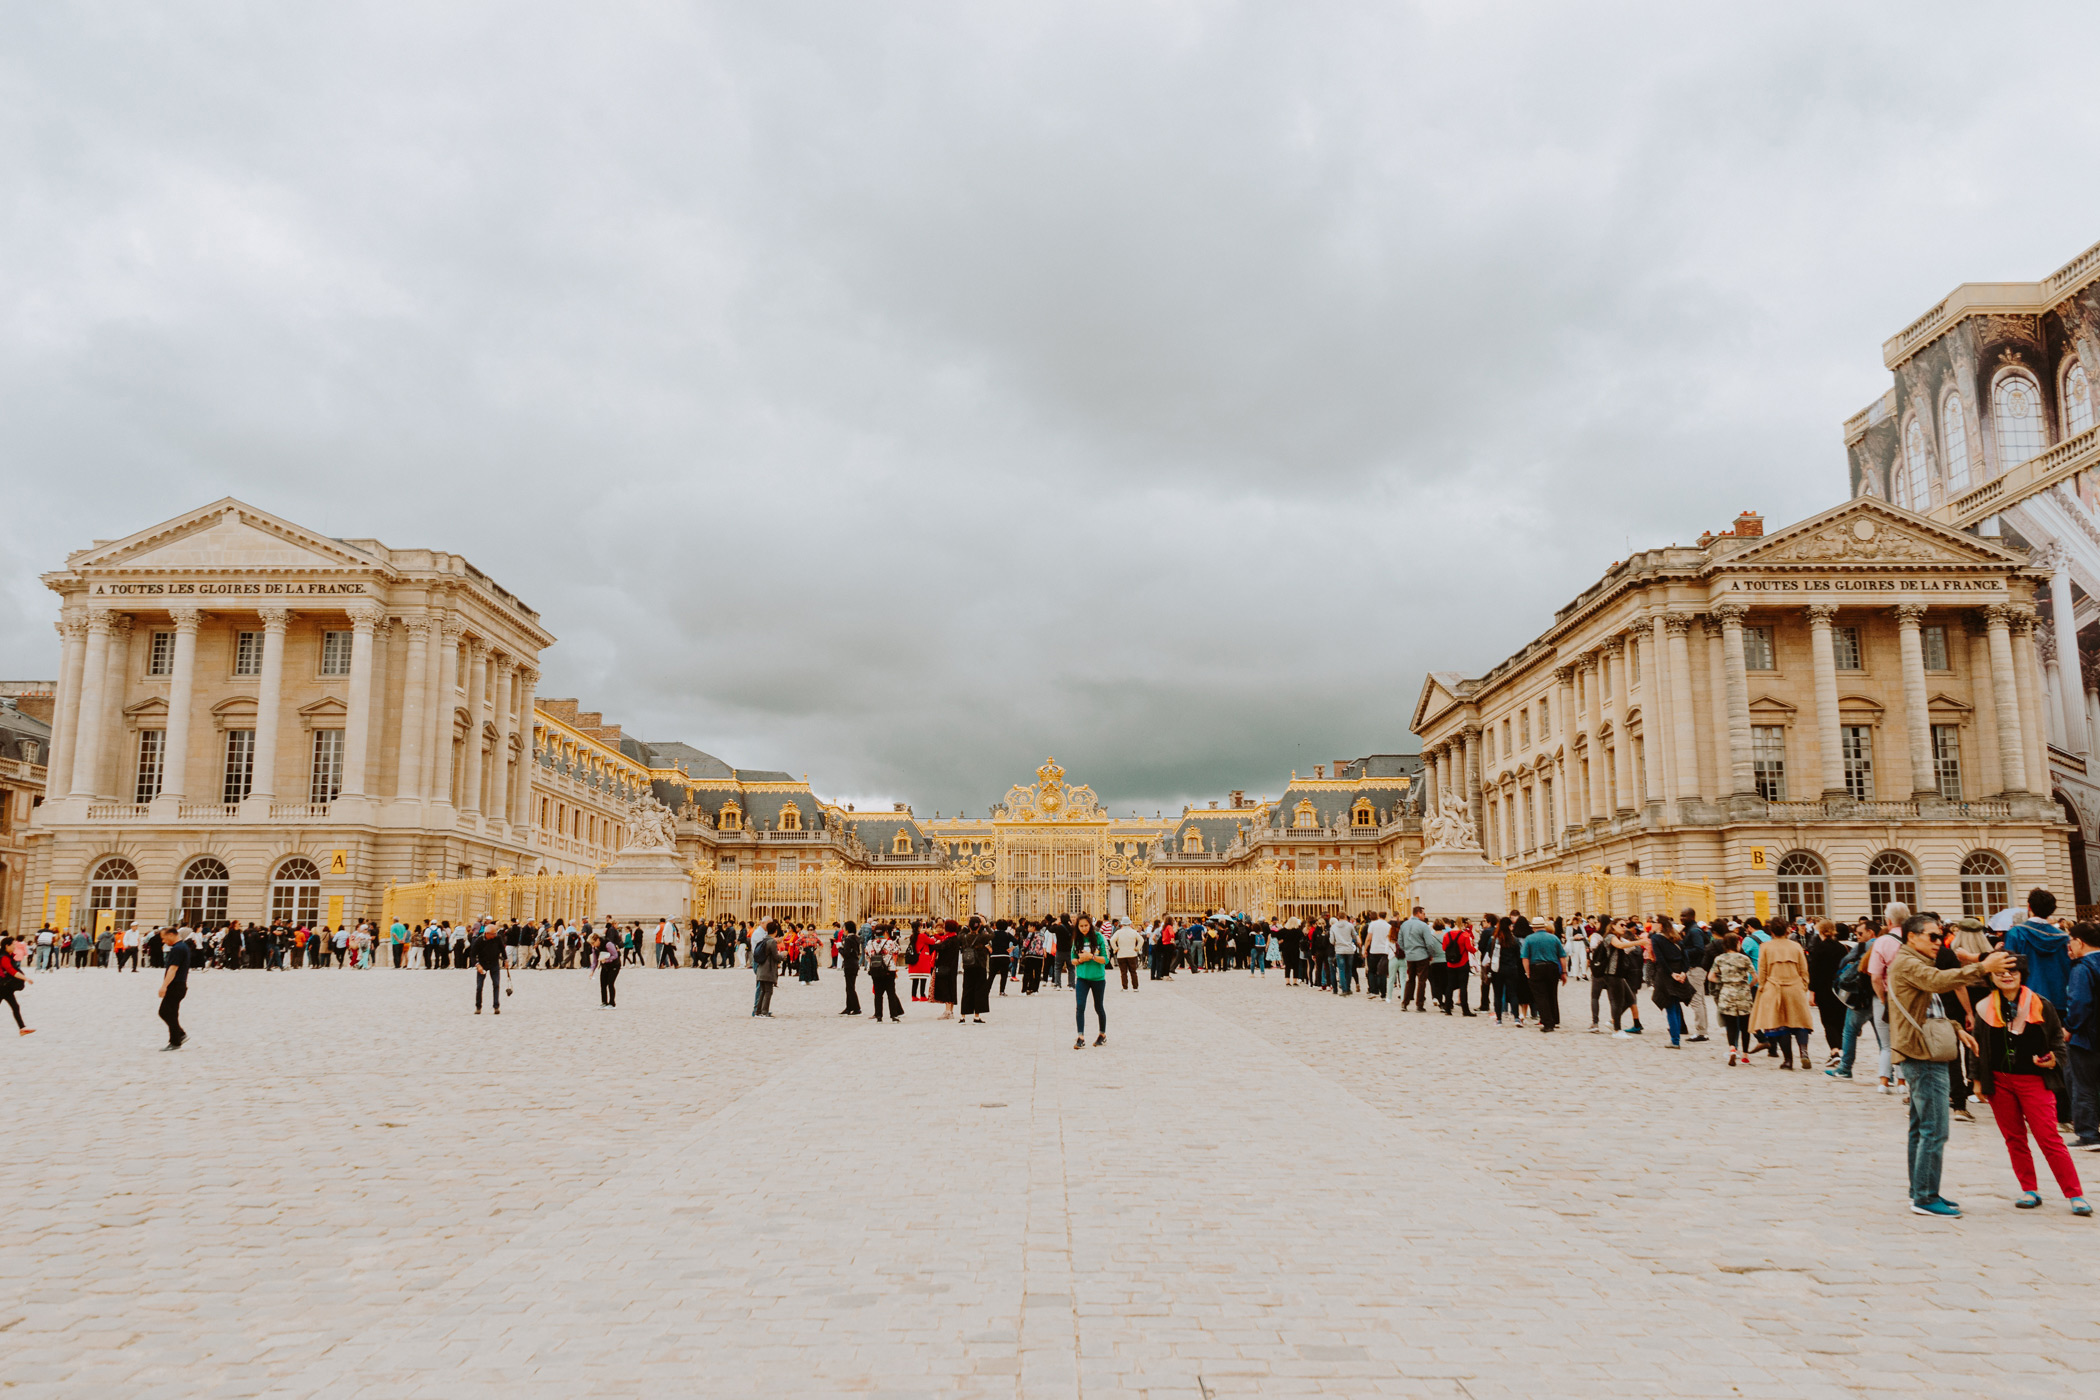 Versailles - it was packed! But really surreal that we stood here.